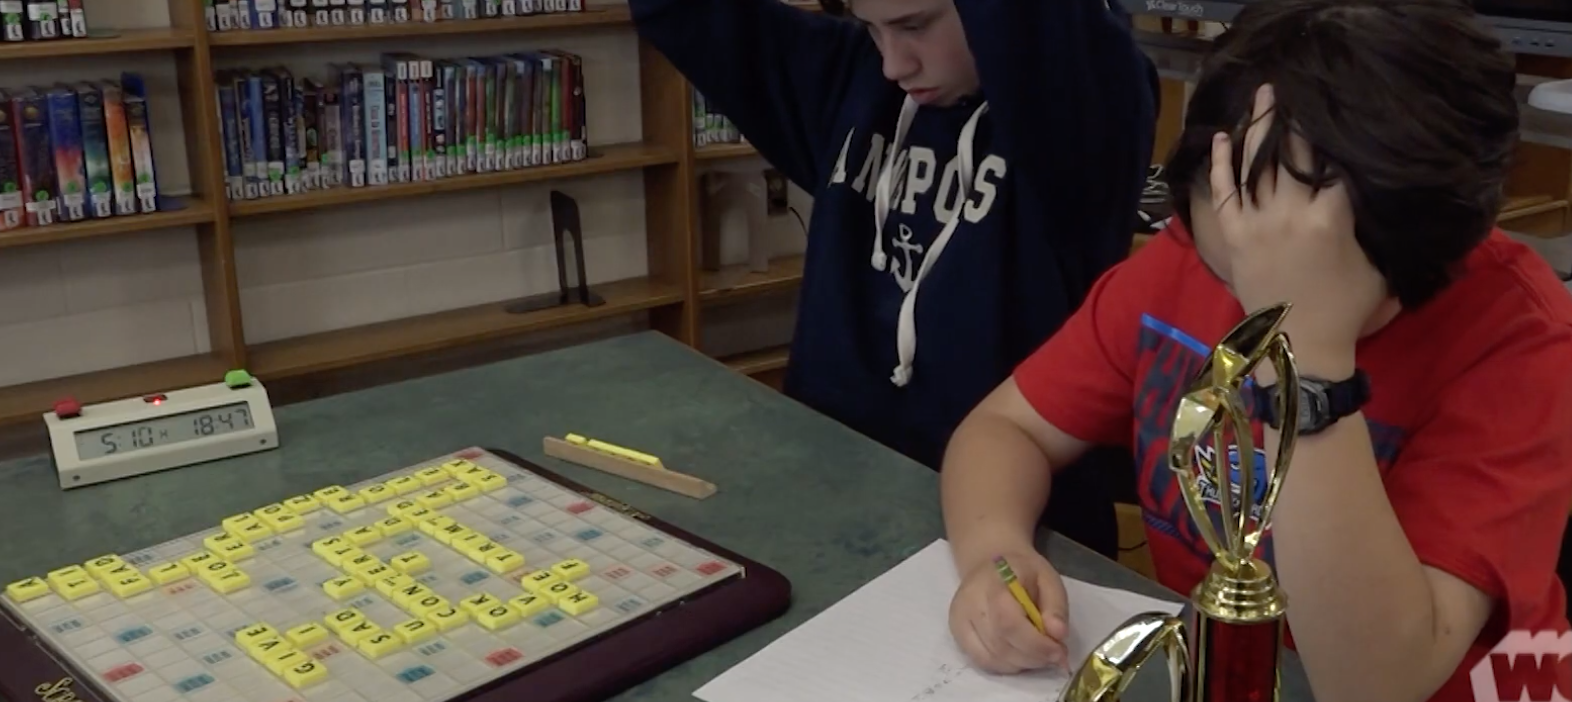 JFK's Scrabble Club makes the News